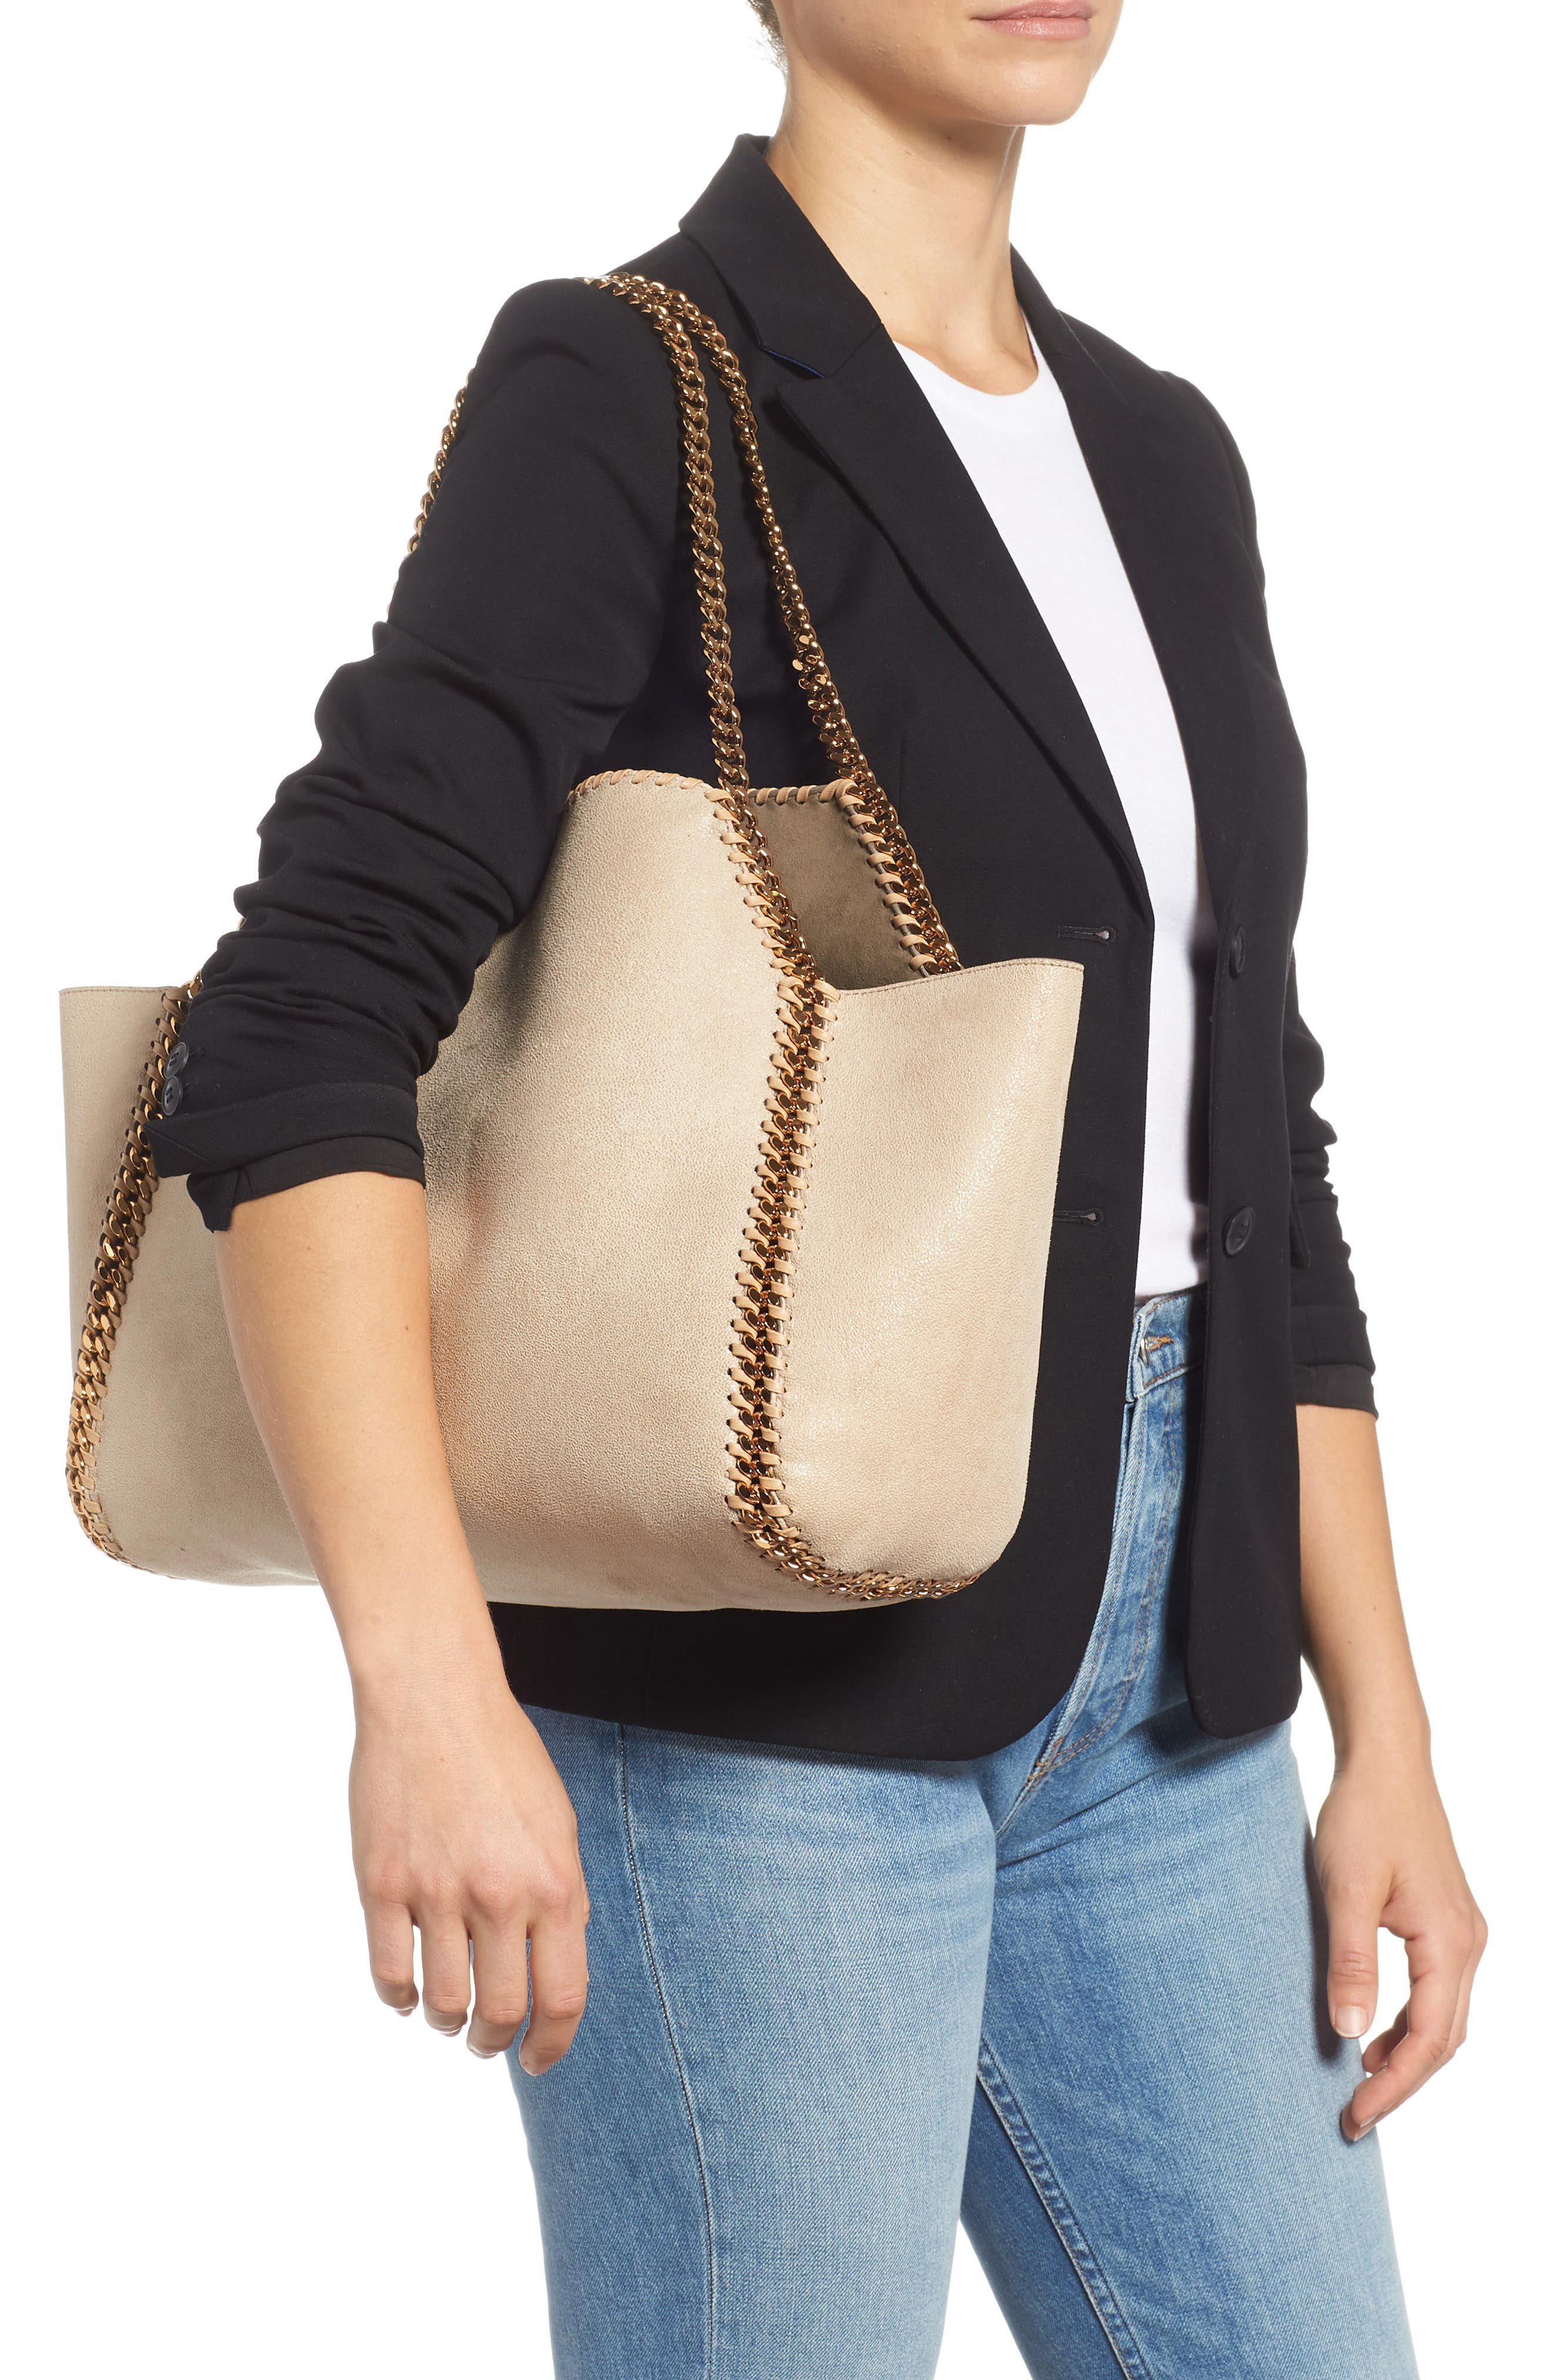 Shaggy Deer Reversible Faux Leather Tote,                             Alternate thumbnail 2, color,                             CLOTTED CREAM